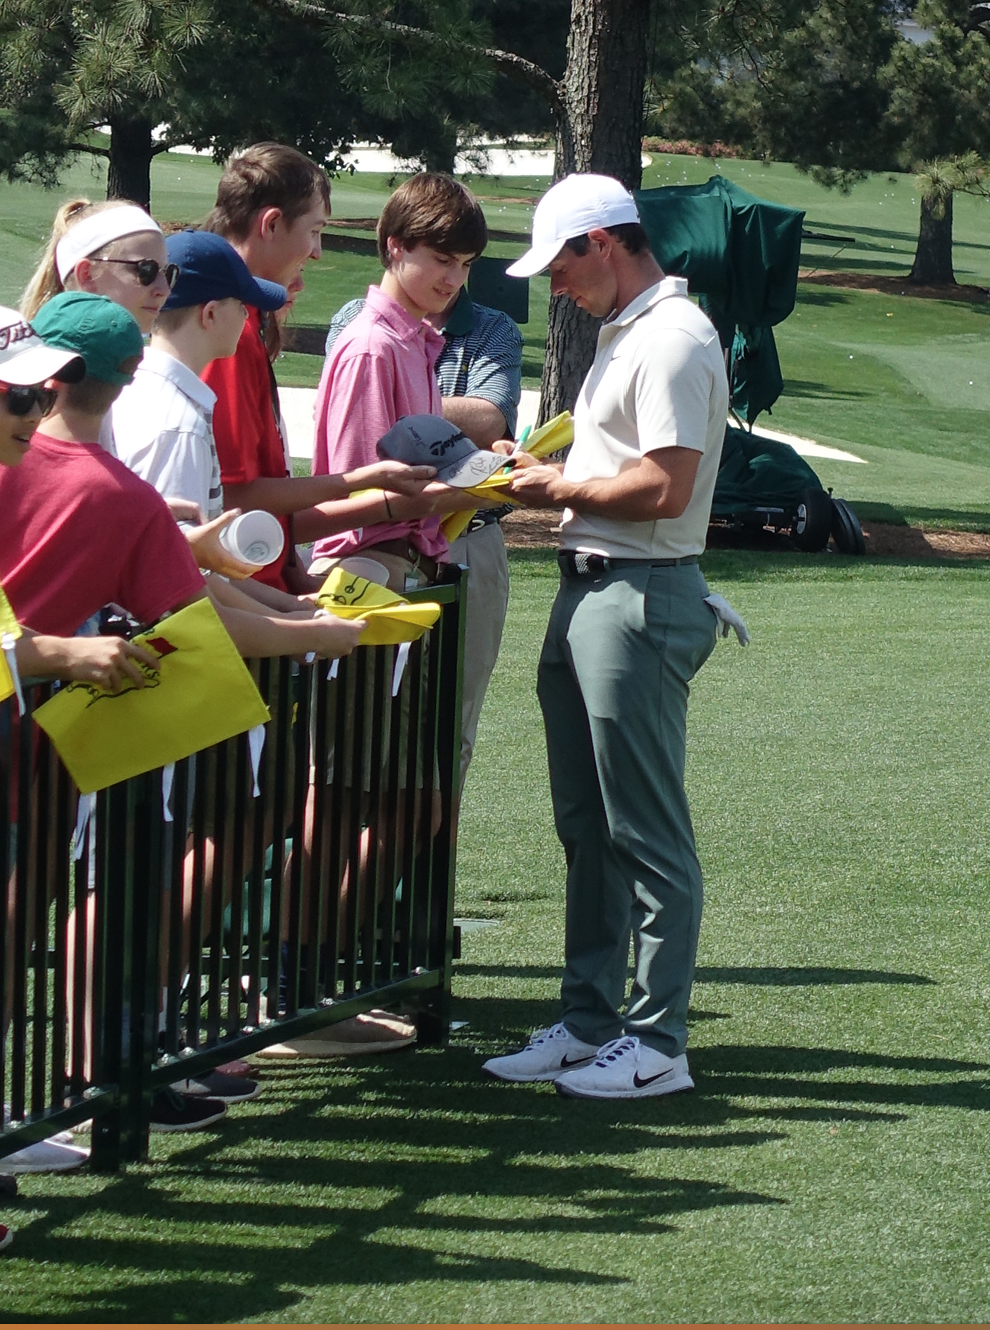 Rory McIlroy spent a long time signing autographs.